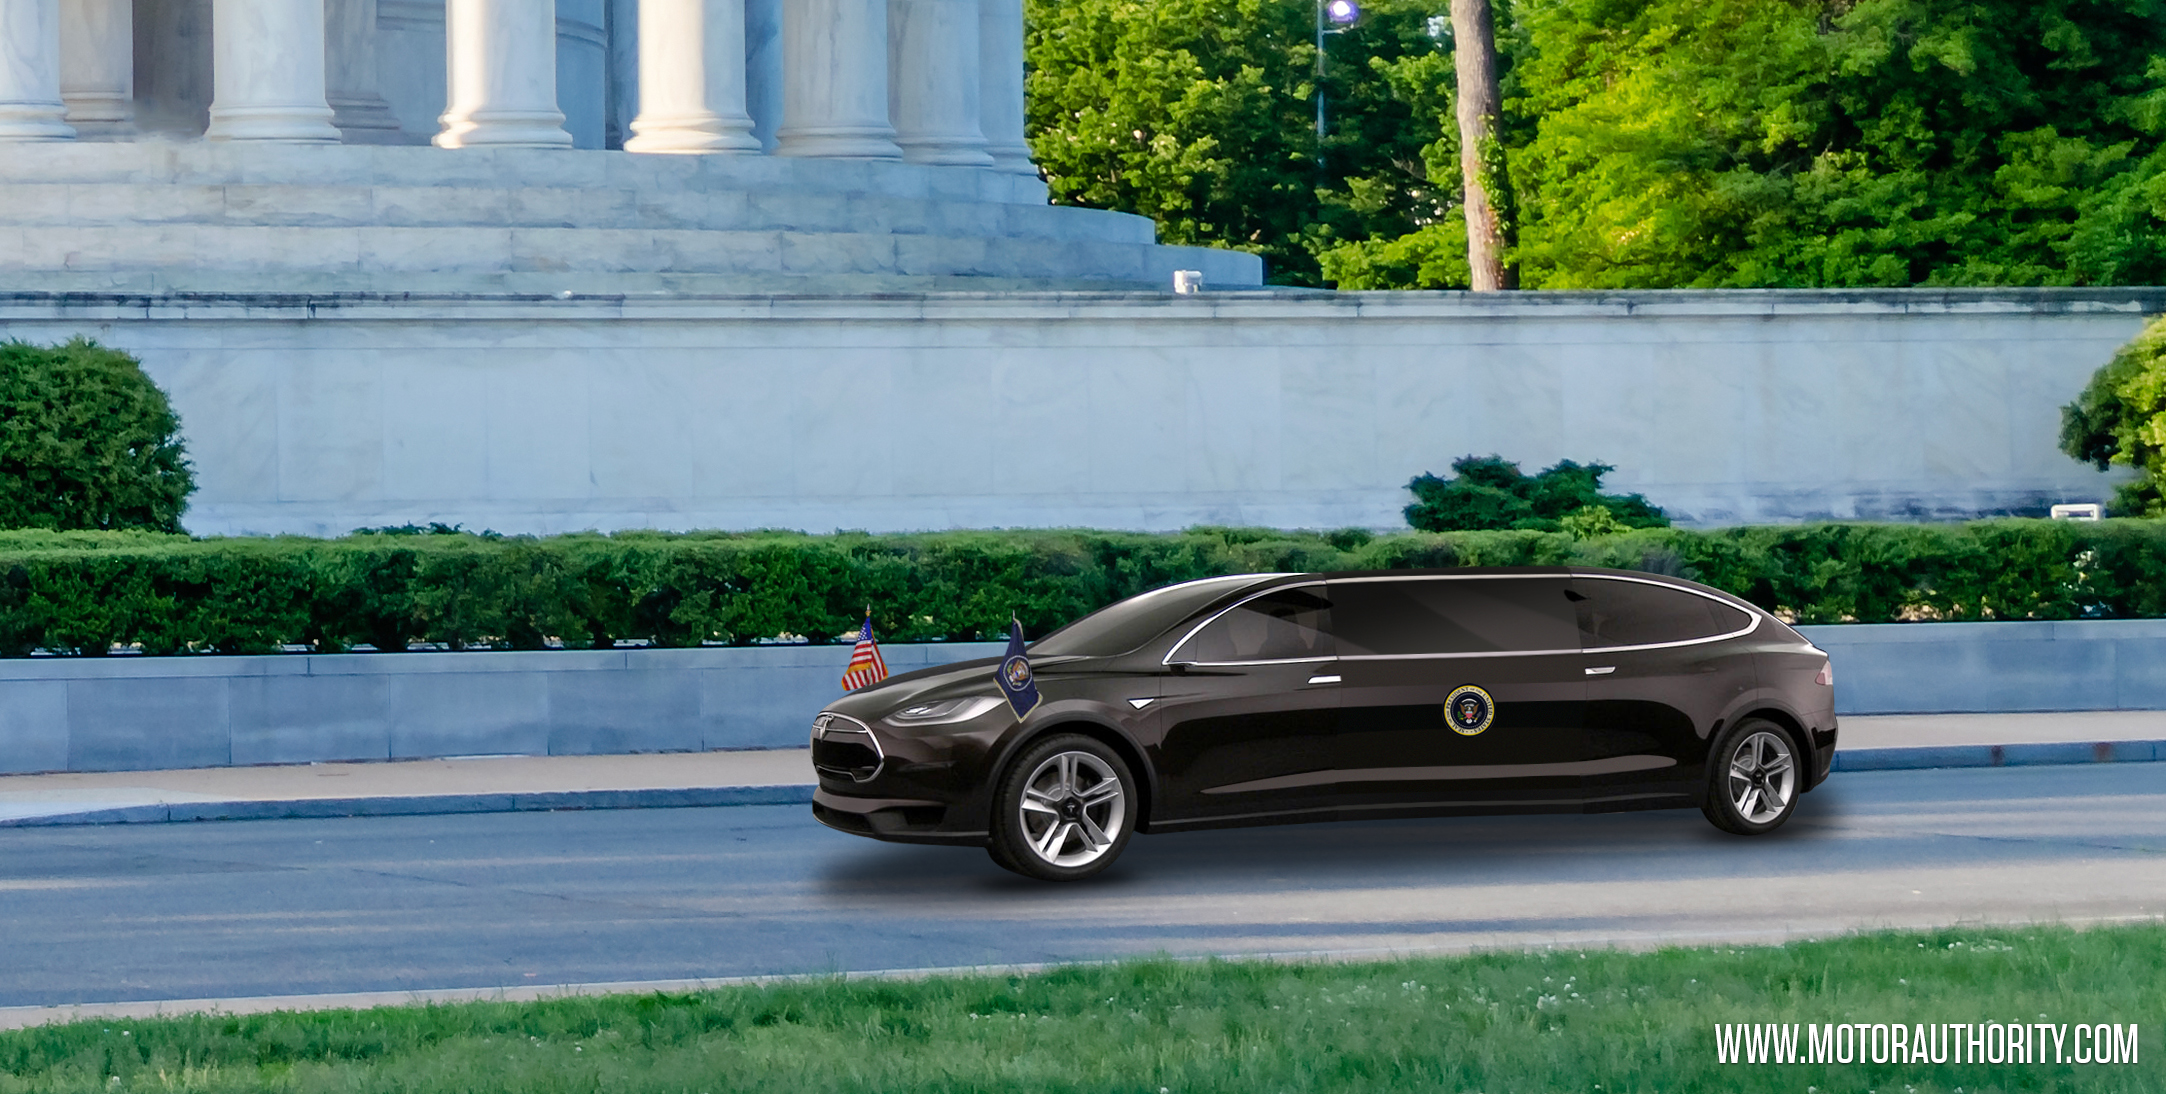 Should the next presidential limo be a Tesla?